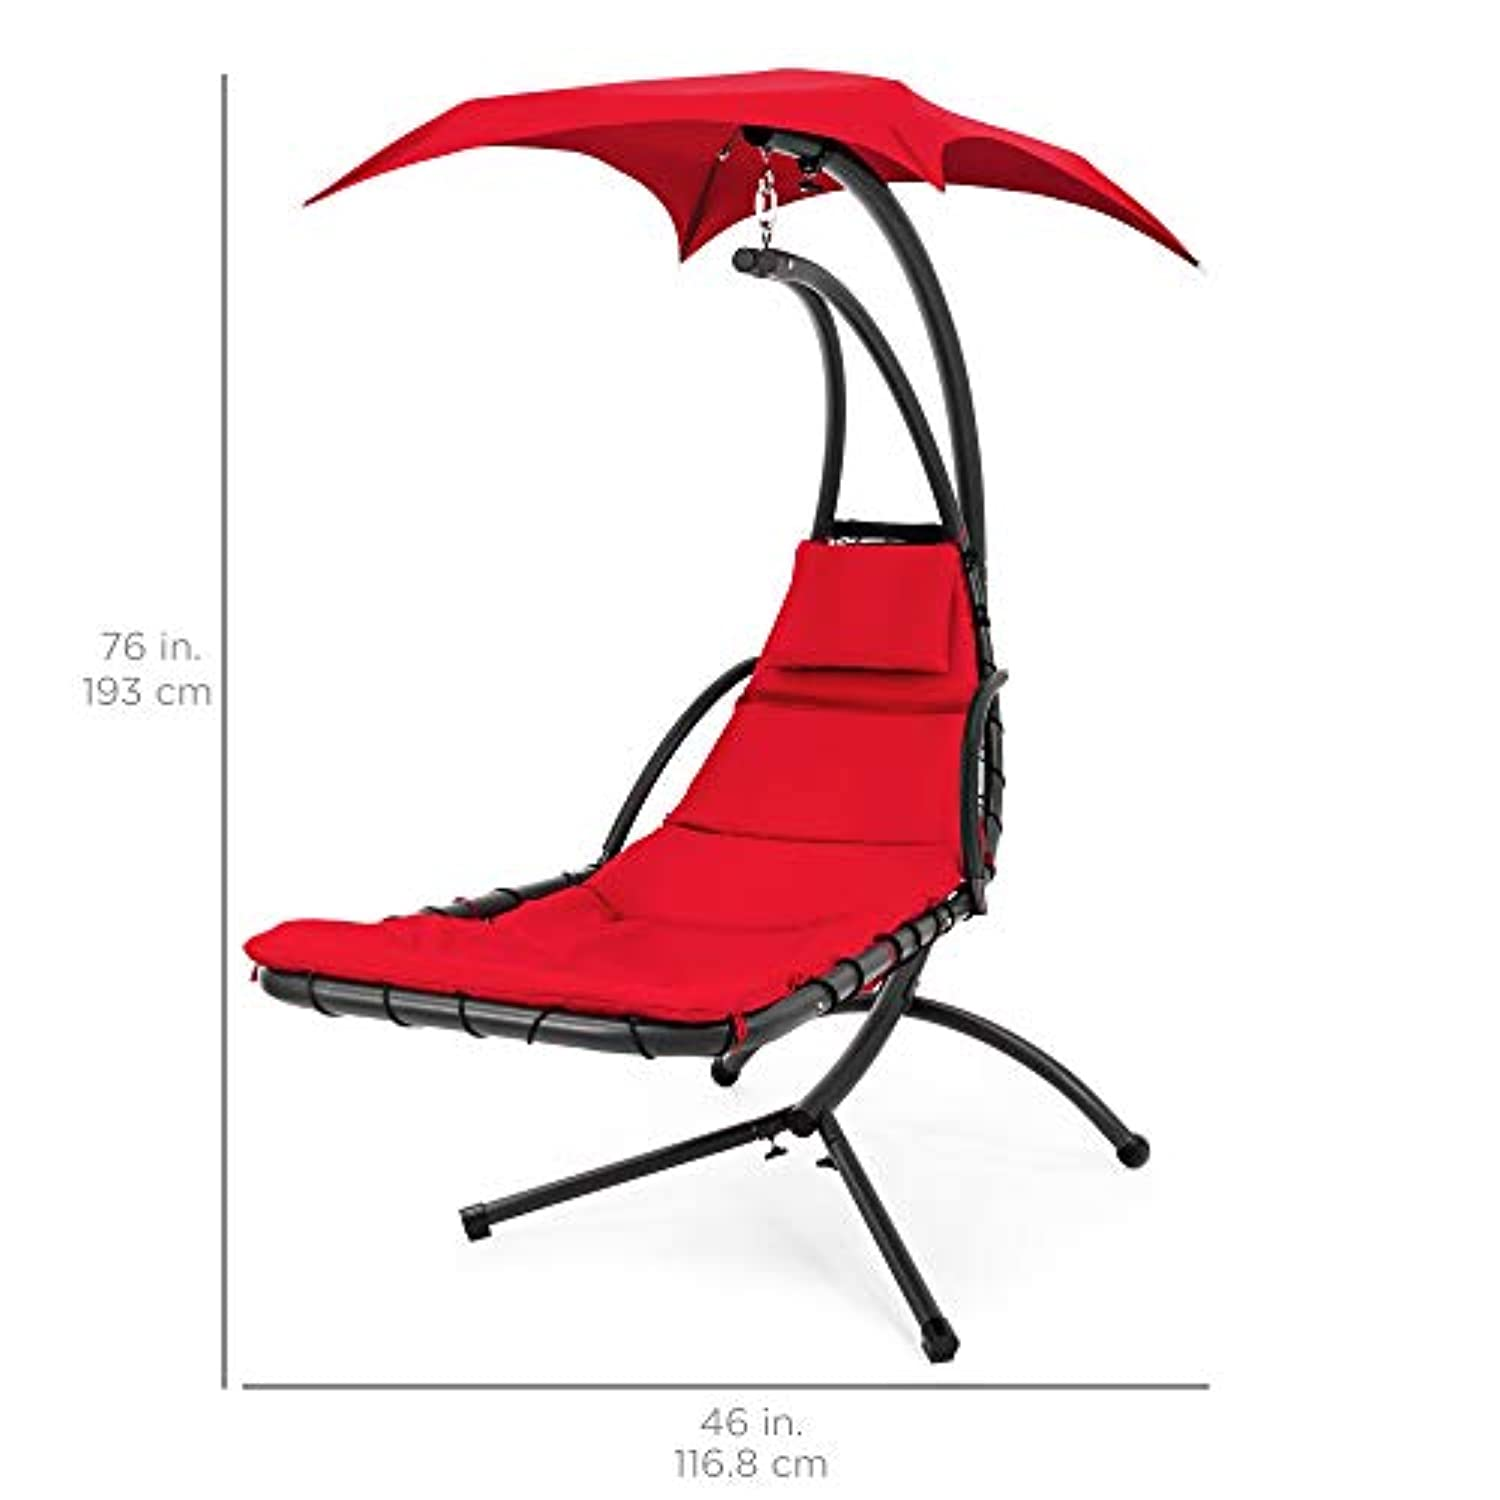 Classier: Buy Best Choice Products Best Choice Products Hanging Curved Chaise Lounge Chair Swing for Backyard, Patio w/Pillow, Canopy, Stand - Red